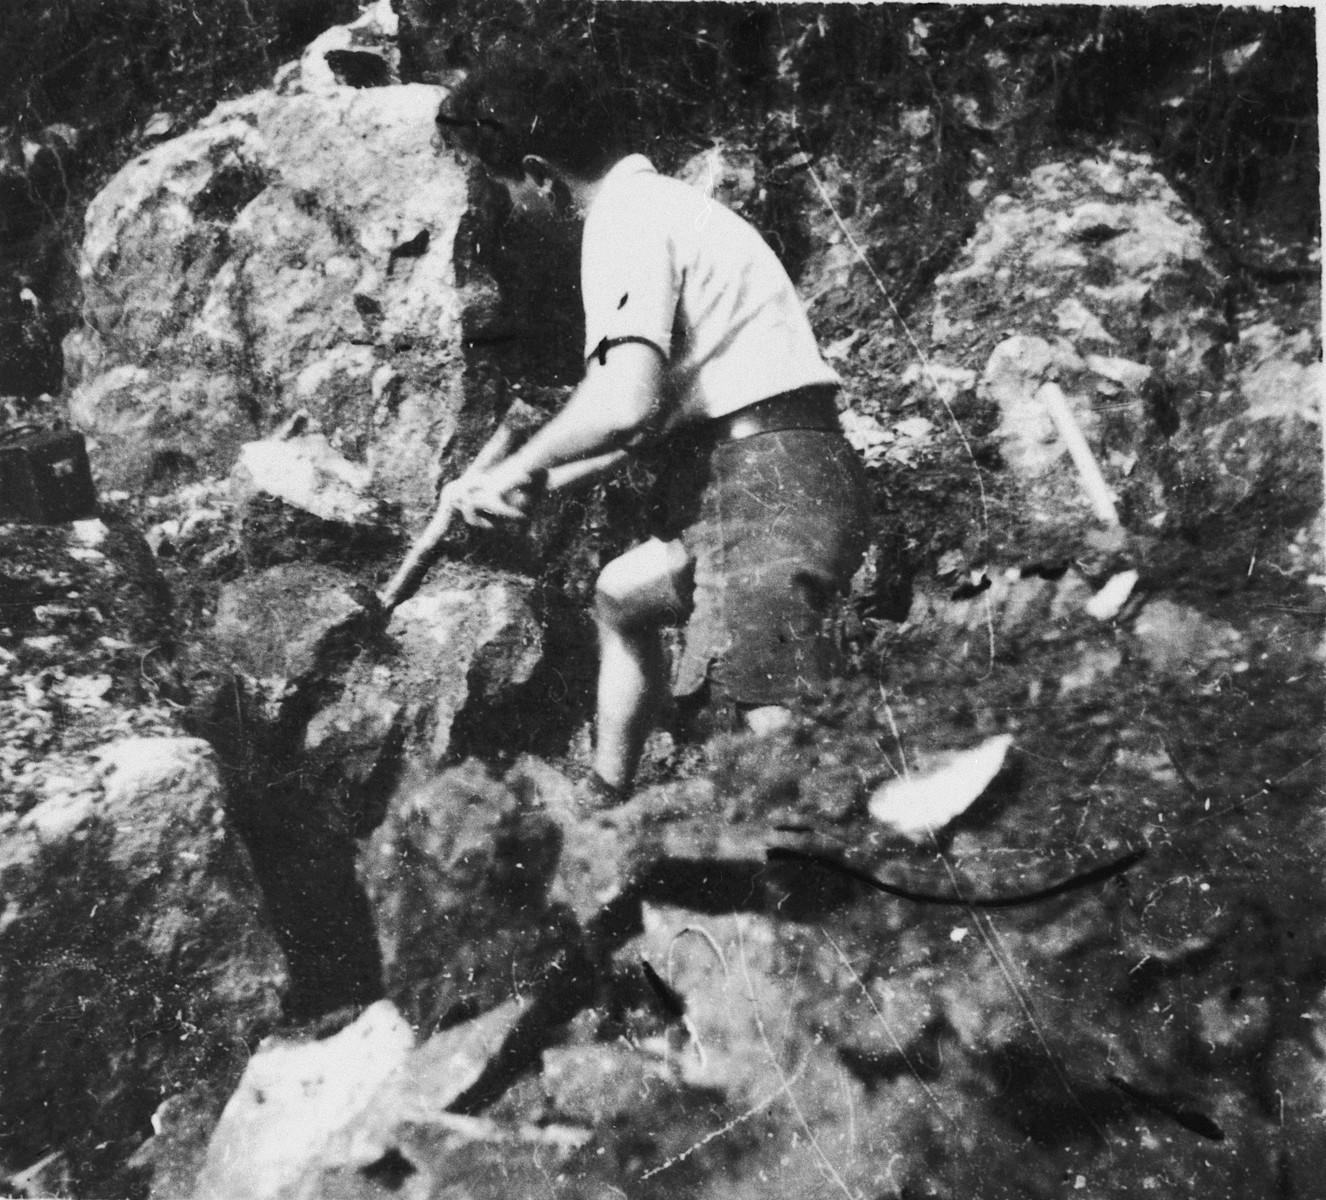 Jewish refugee Eryk Golfarb works at widening a mountain road while living in hiding in Col de Menee, France.